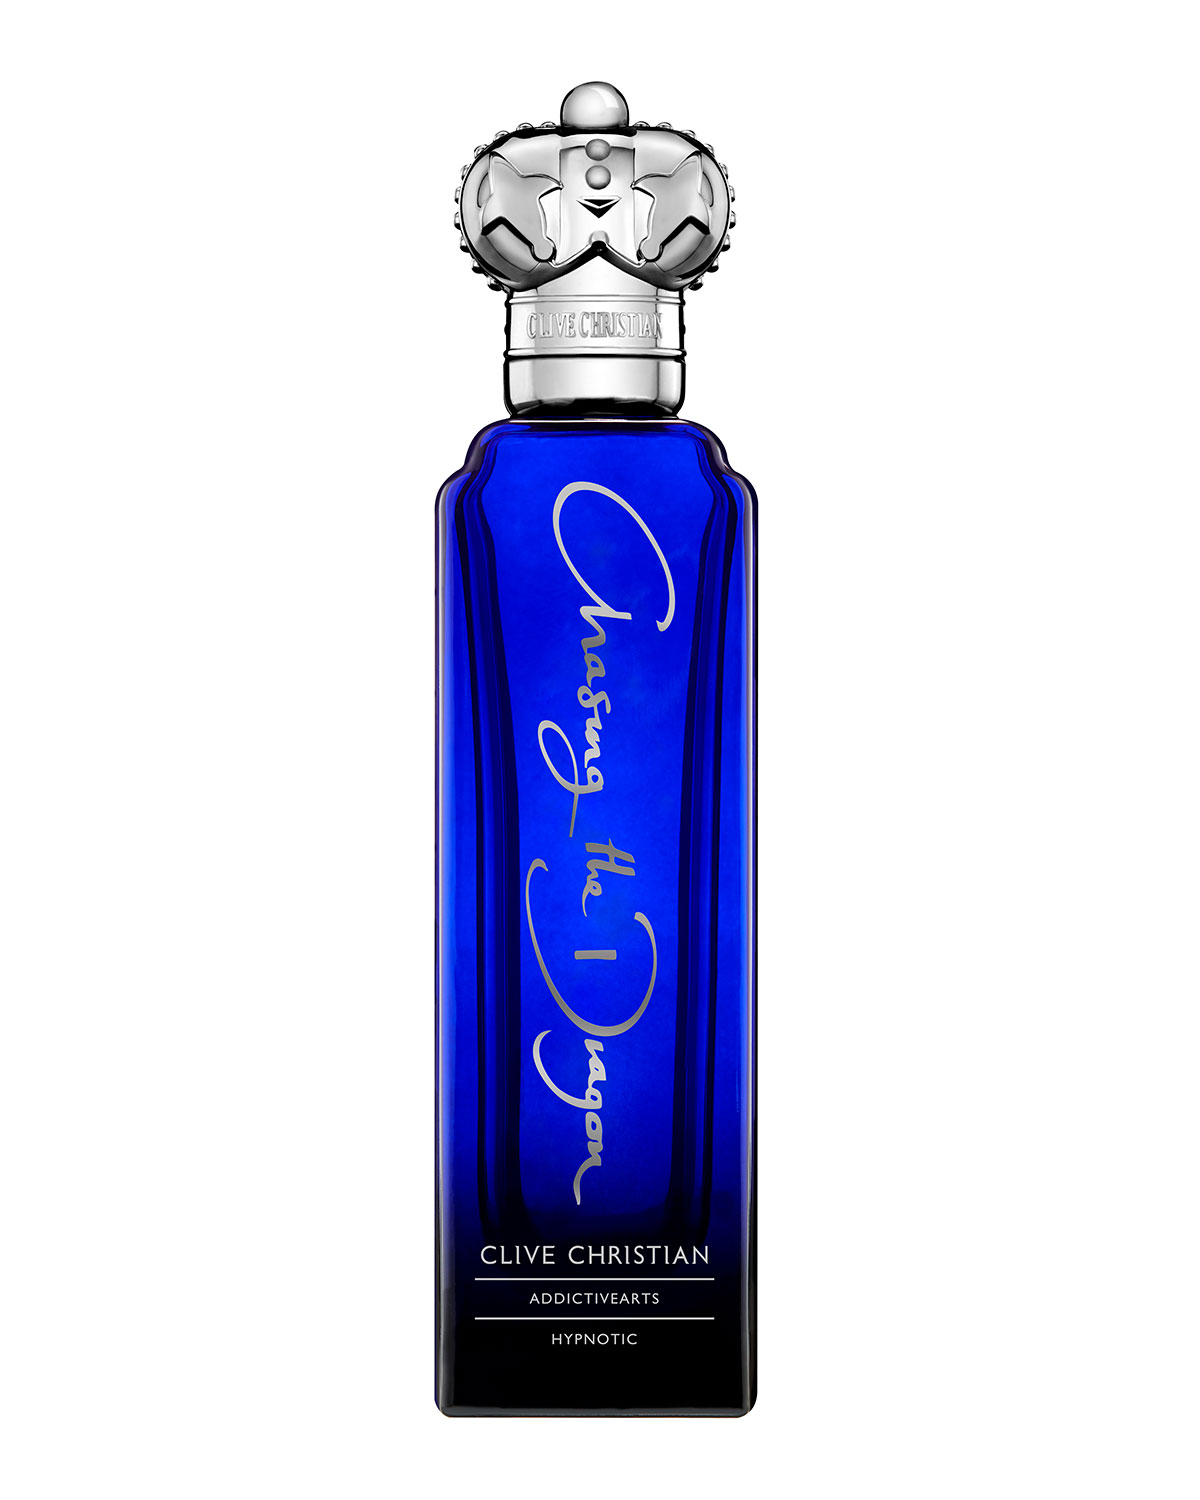 Clive Christian 2.5 oz. Addictive Arts Chasing the Dragon Hypnotic Masculine